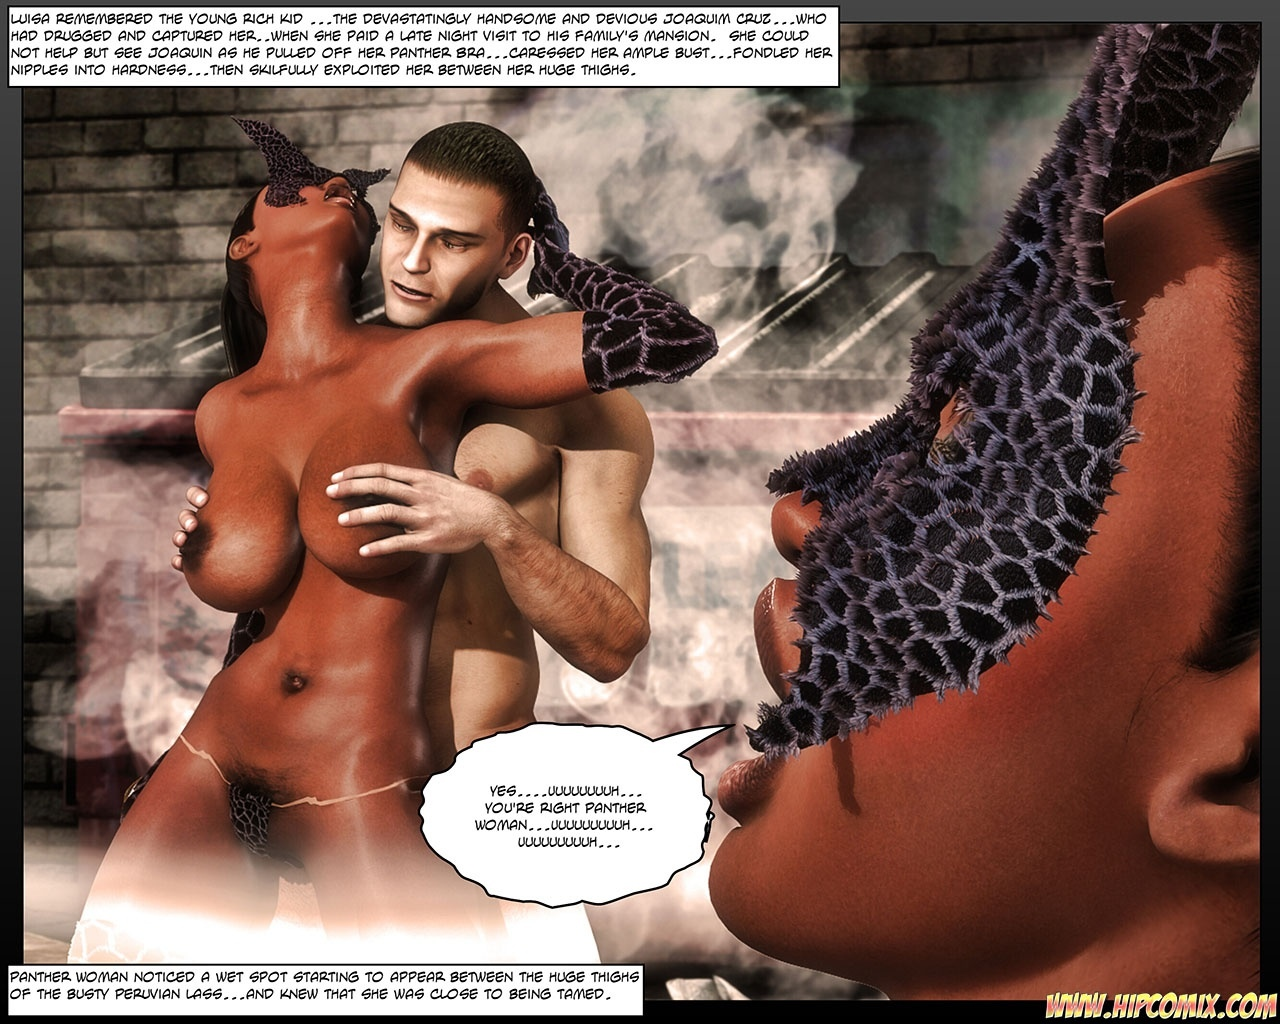 Panther-Girl-33 7 free sex comic